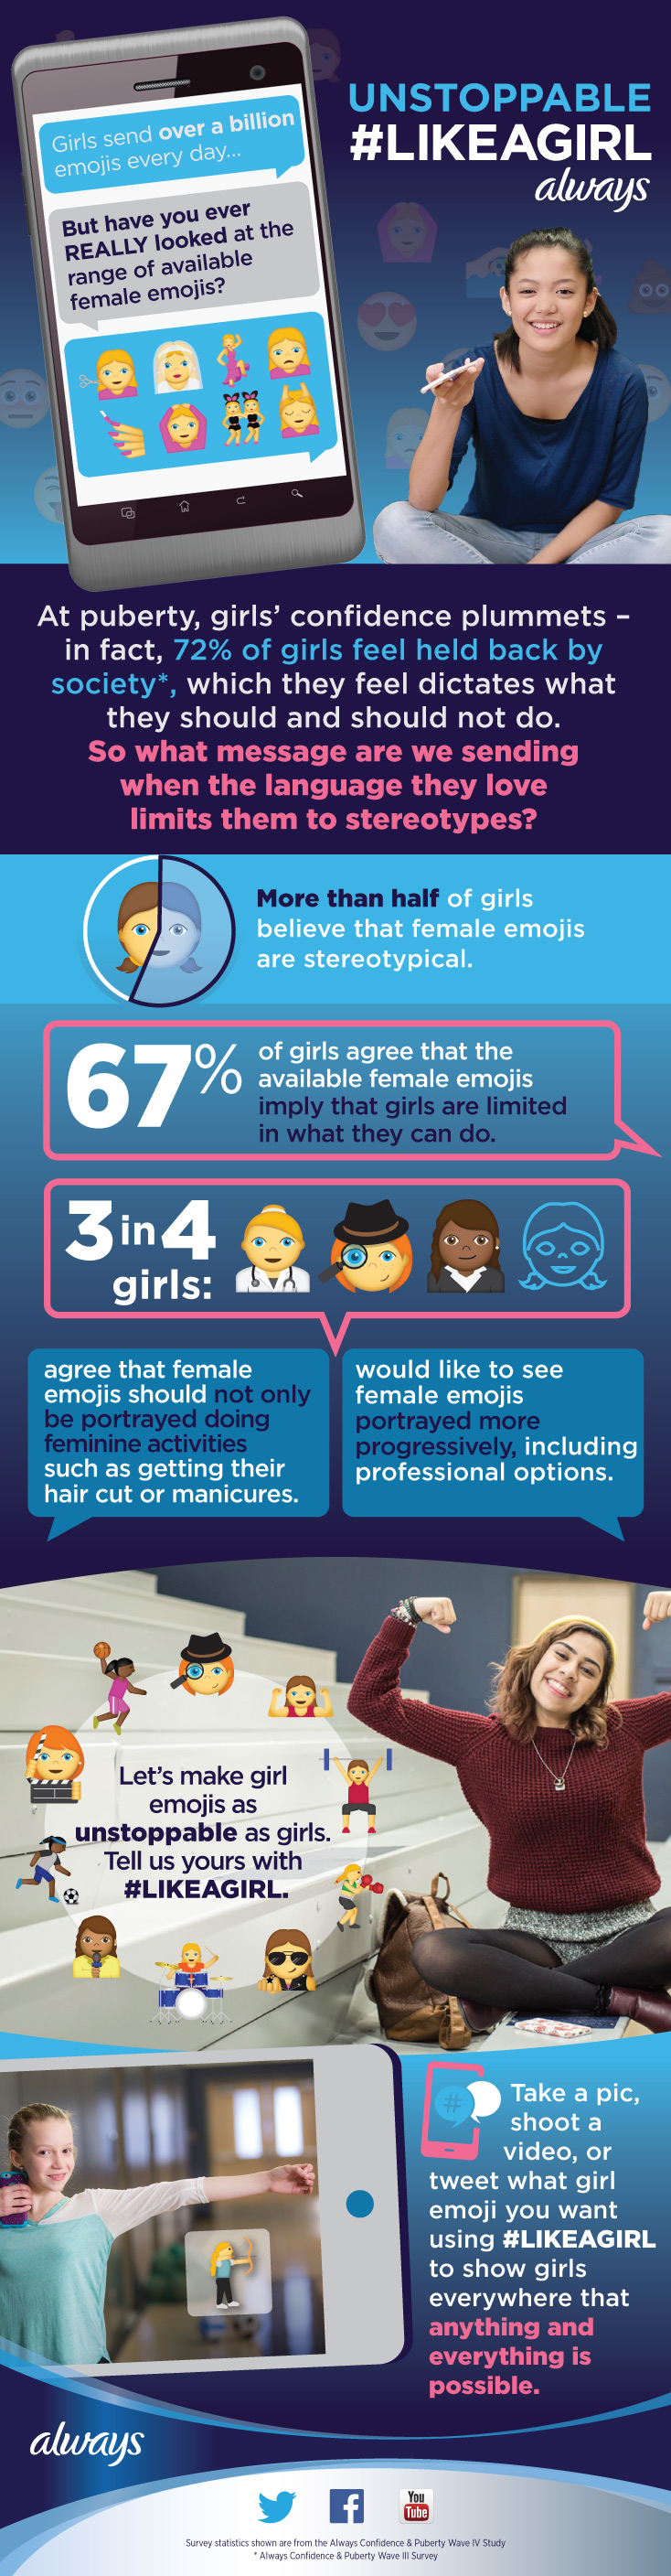 Always LikeAGirl - Girl Emojis Infographic